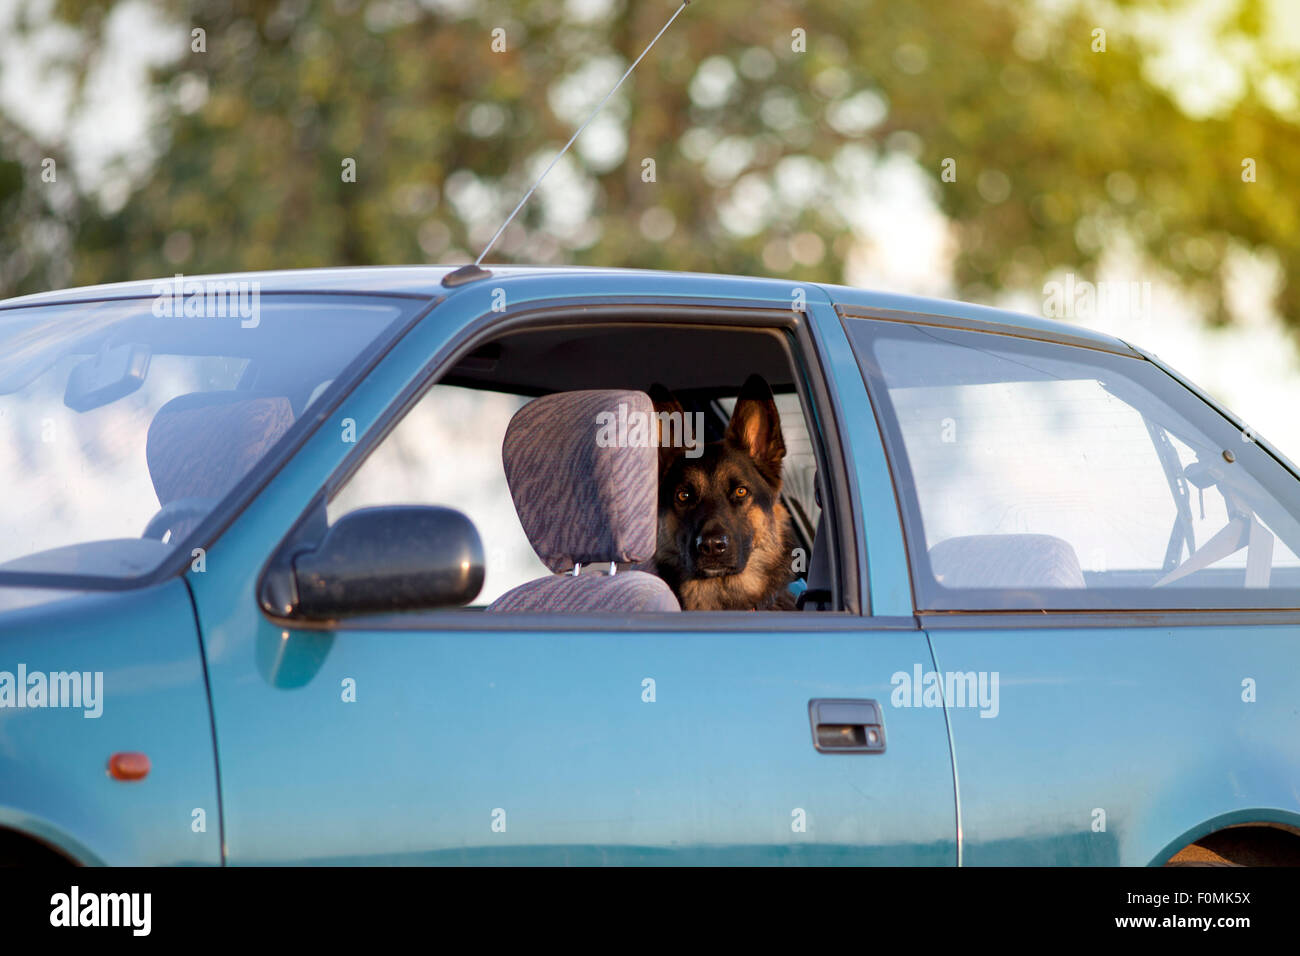 Dog in hot car in summer - Stock Image